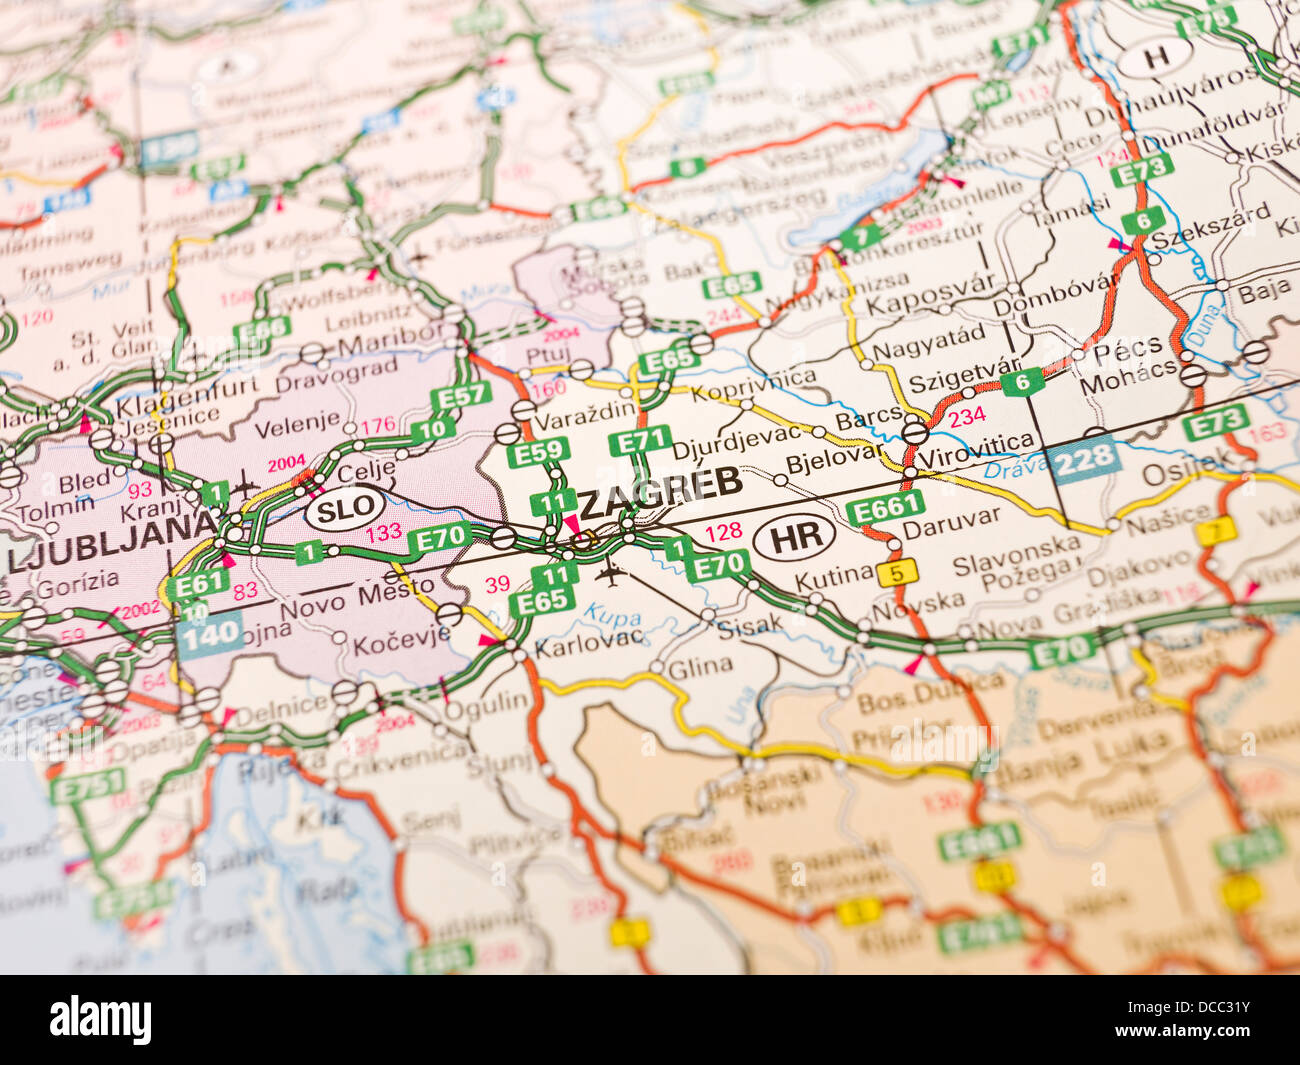 Map of Zagreb Stock Photo 59272807 Alamy